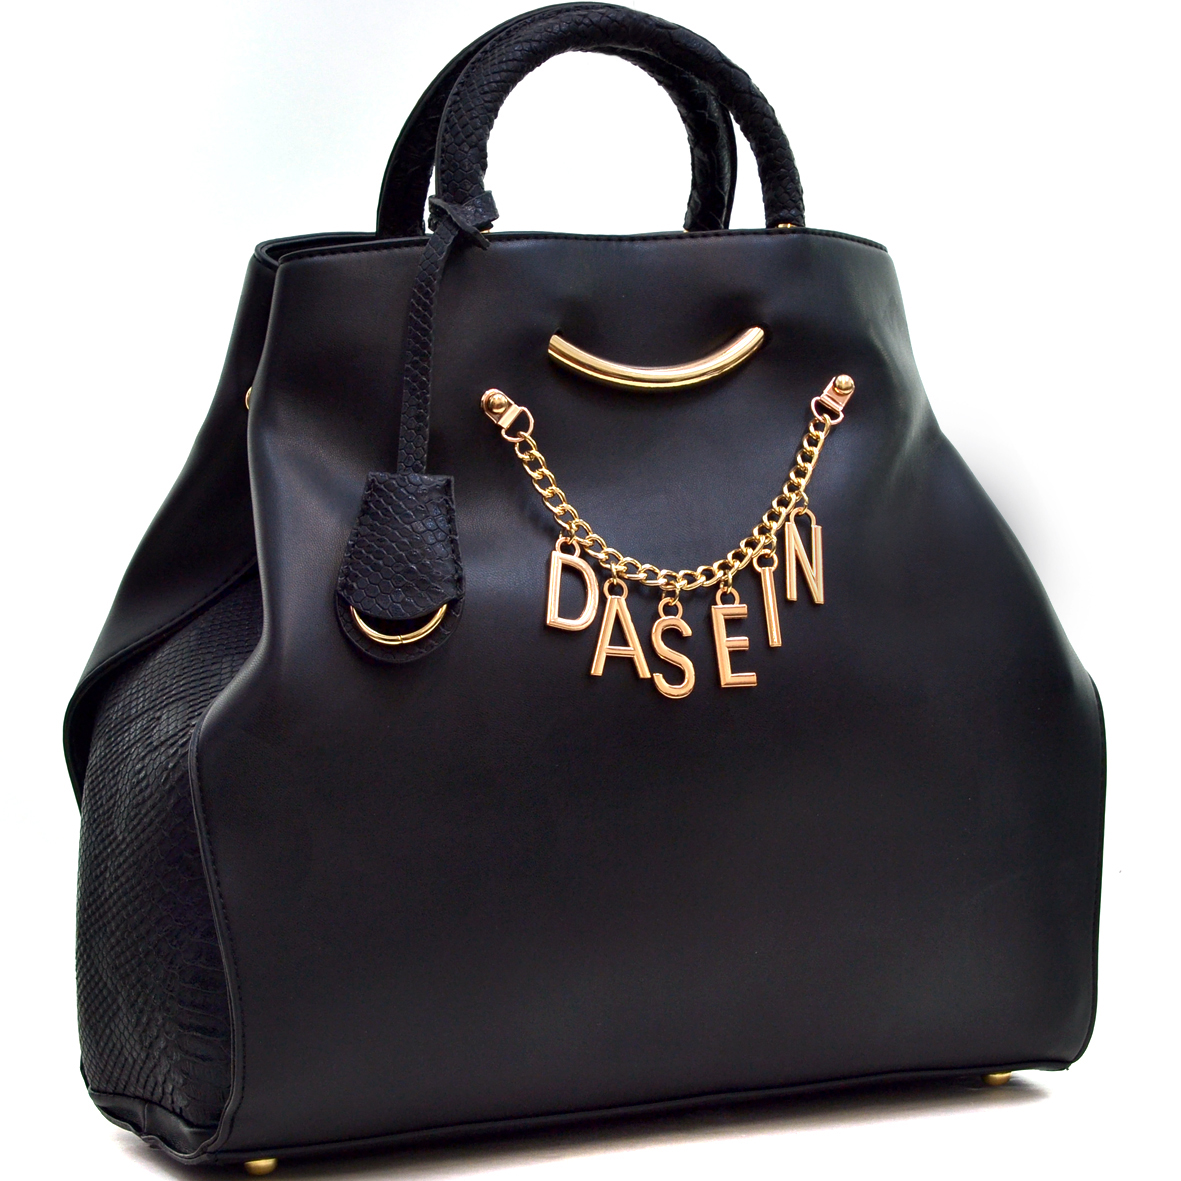 Dasein® Charm Tote Bag with Embossed Trim